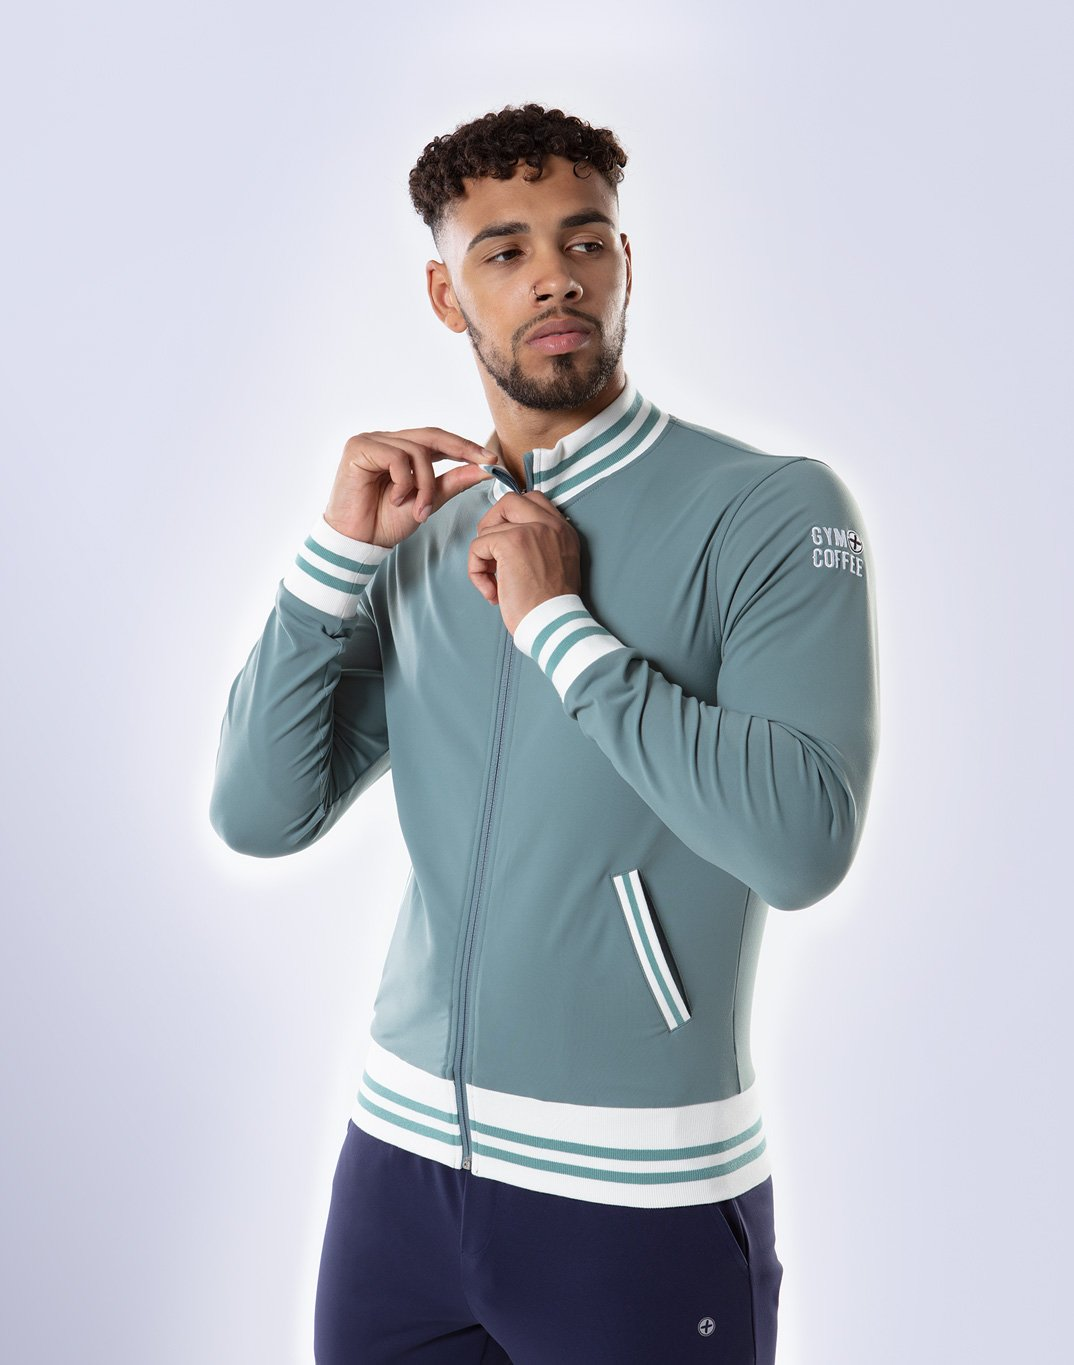 Gym Plus Coffee Jacket Men's Retro FastTrack Jacket in Green Designed in Ireland